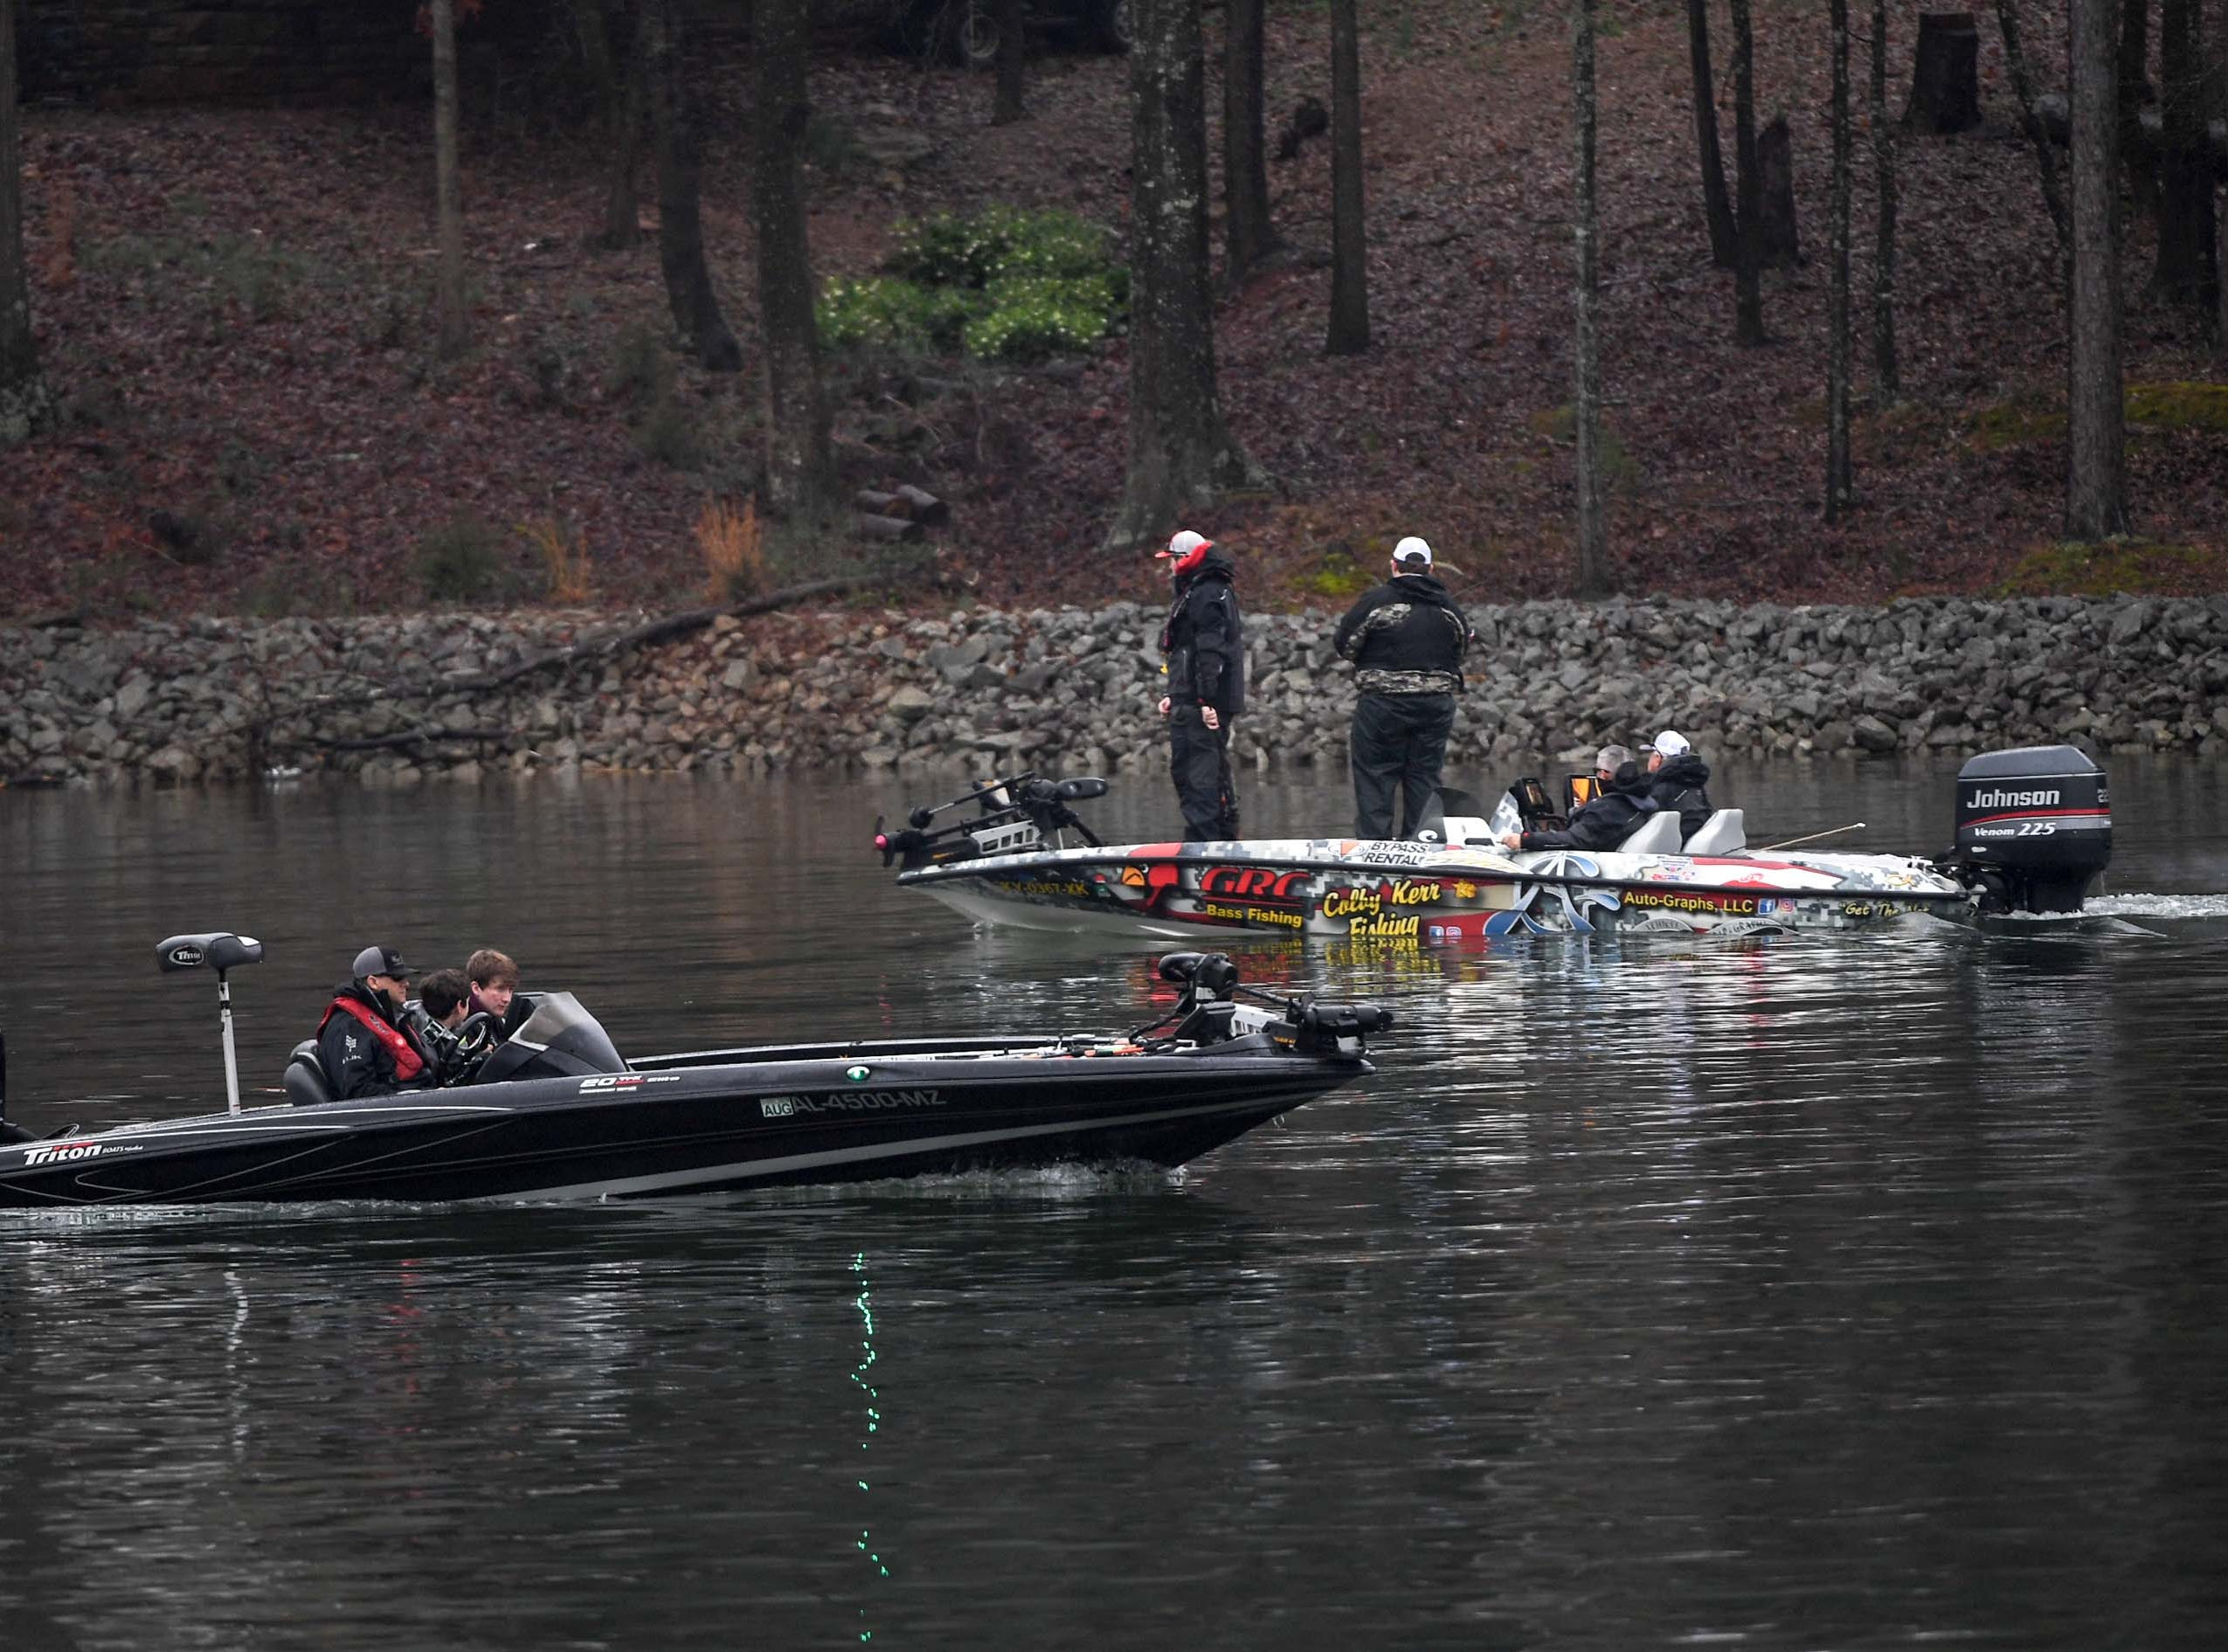 Two boats with high school students practice before the Mossy Oak Fishing Bassmaster High School Open at the Green Pond Boat Landing on Hartwell Lake in Anderson Friday. The official event, with 87 schools from 15 states, starts at the boat landing at 6:45 a.m. Saturday morning.